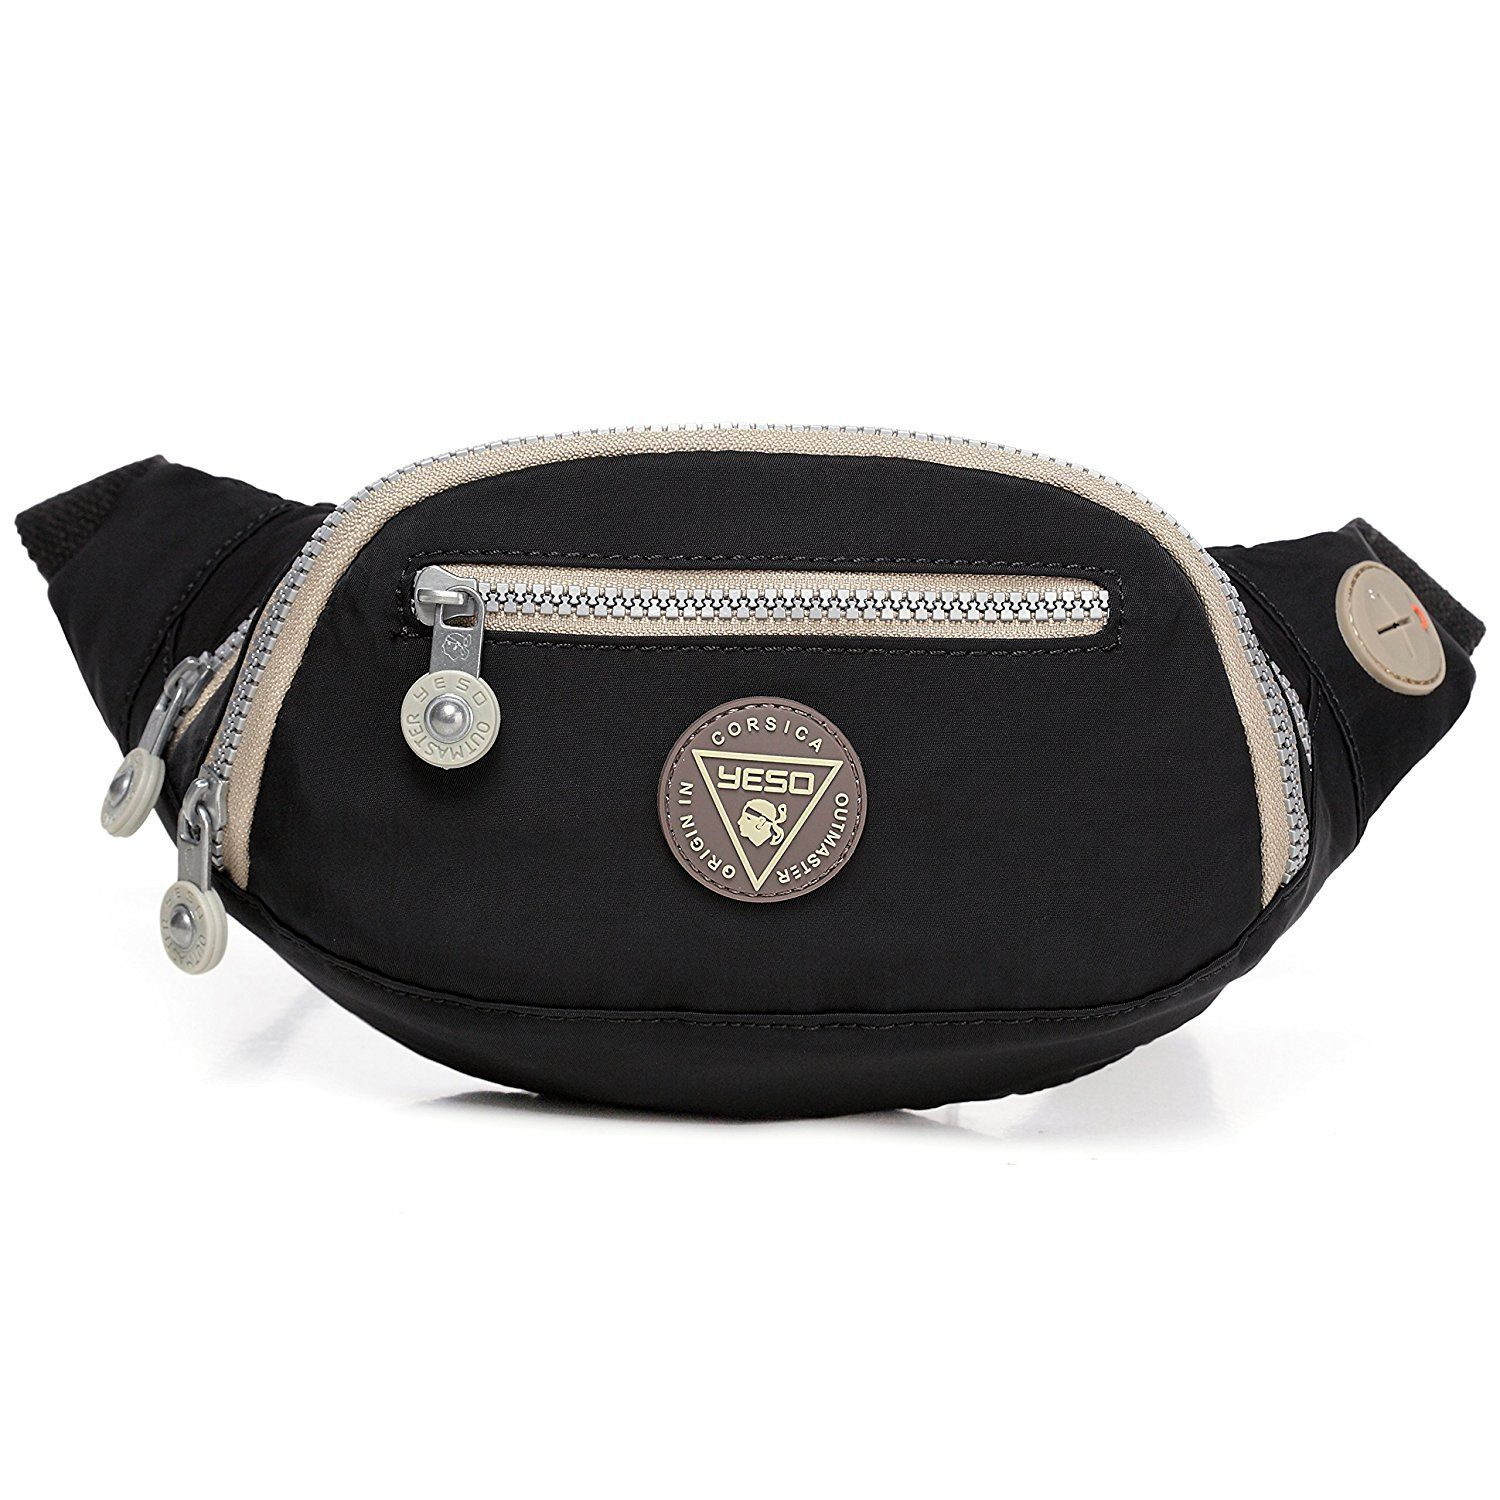 9b4a5338d390 Yeso Cute Water-resistant Nylon Fanny Packs For Women And Men - Mini ...